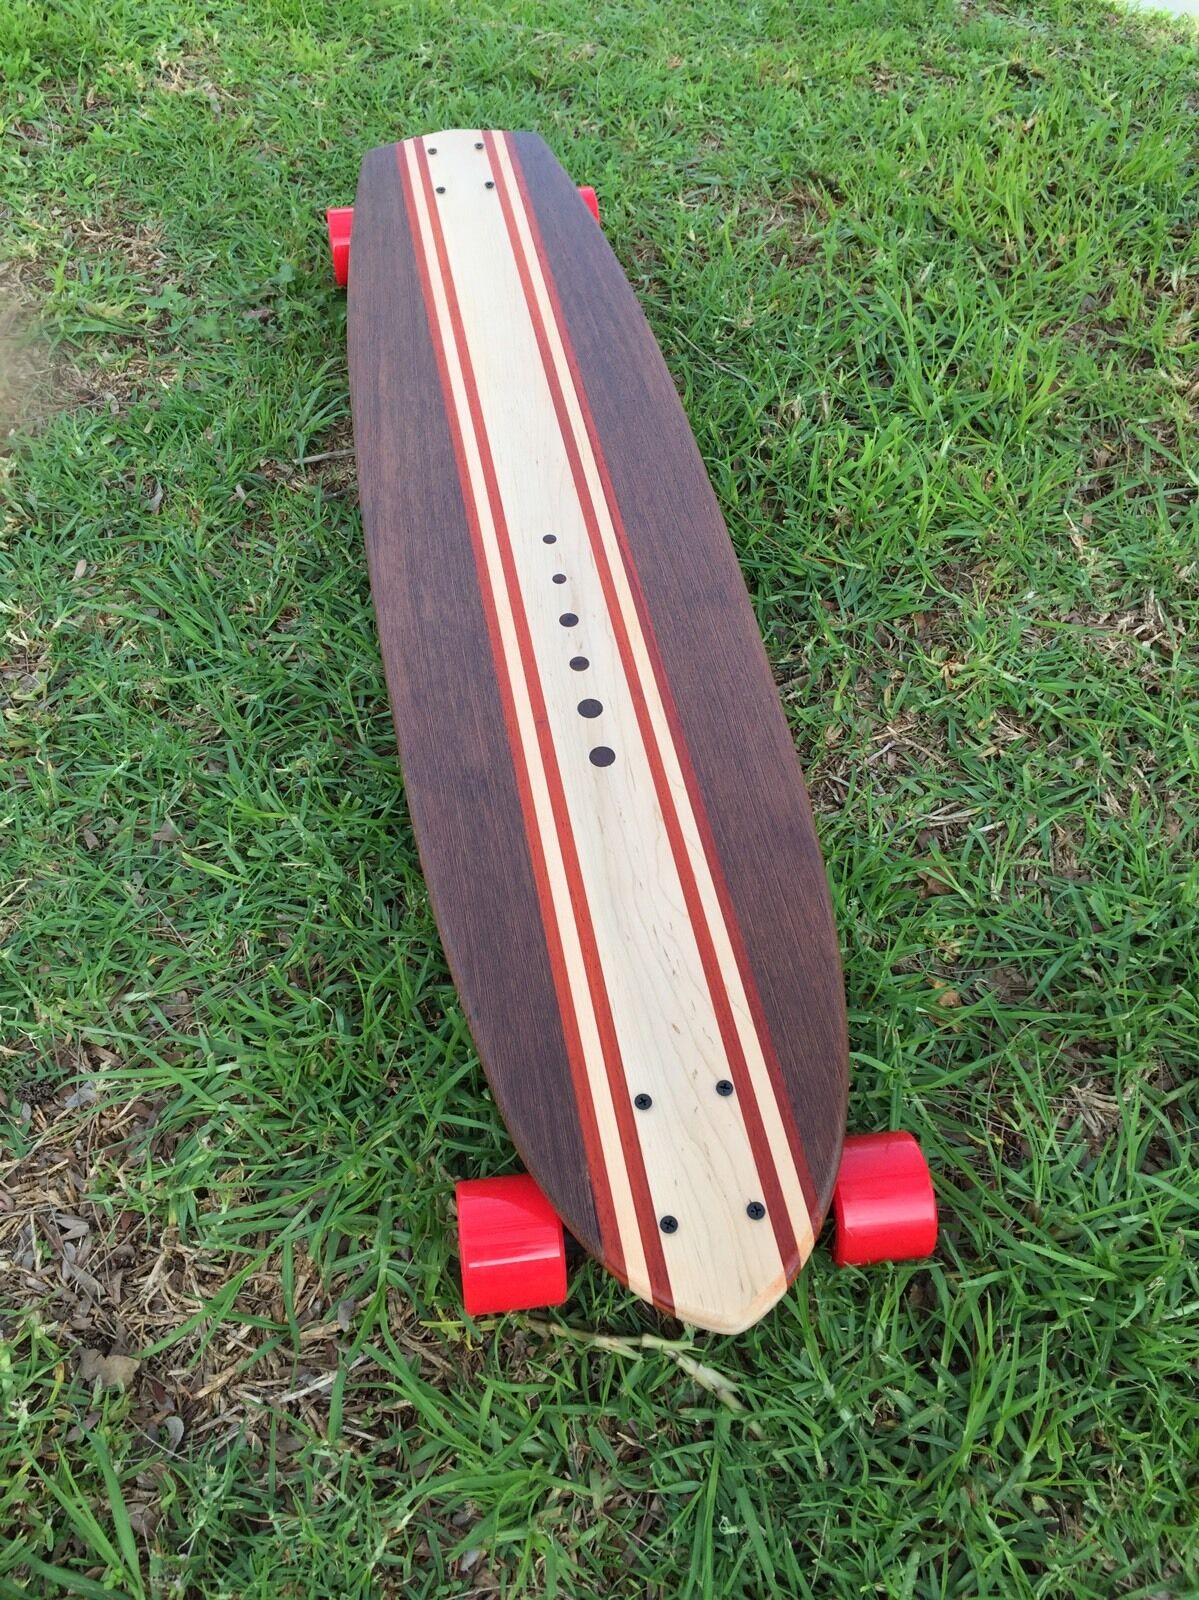 Longboard made of Solid Wood - Blinky - 42x10 (with Inlays)